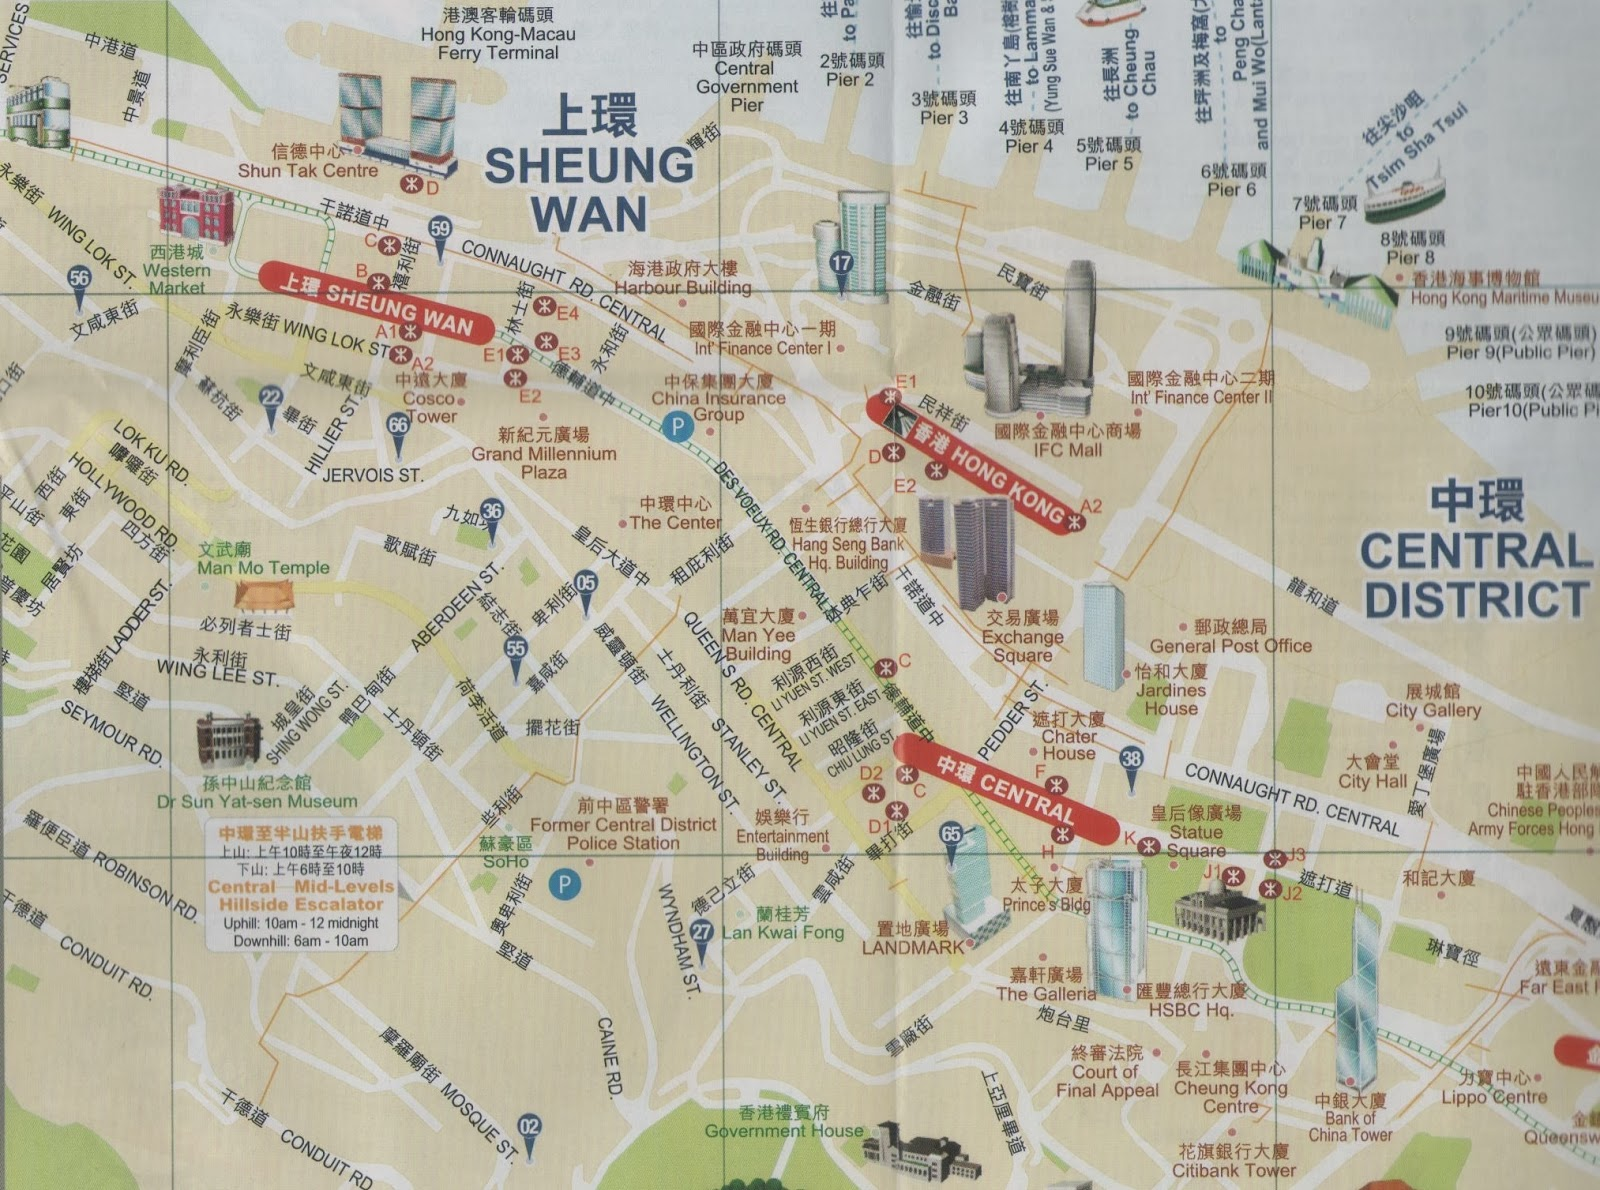 Travel in Sheung Wan and Central